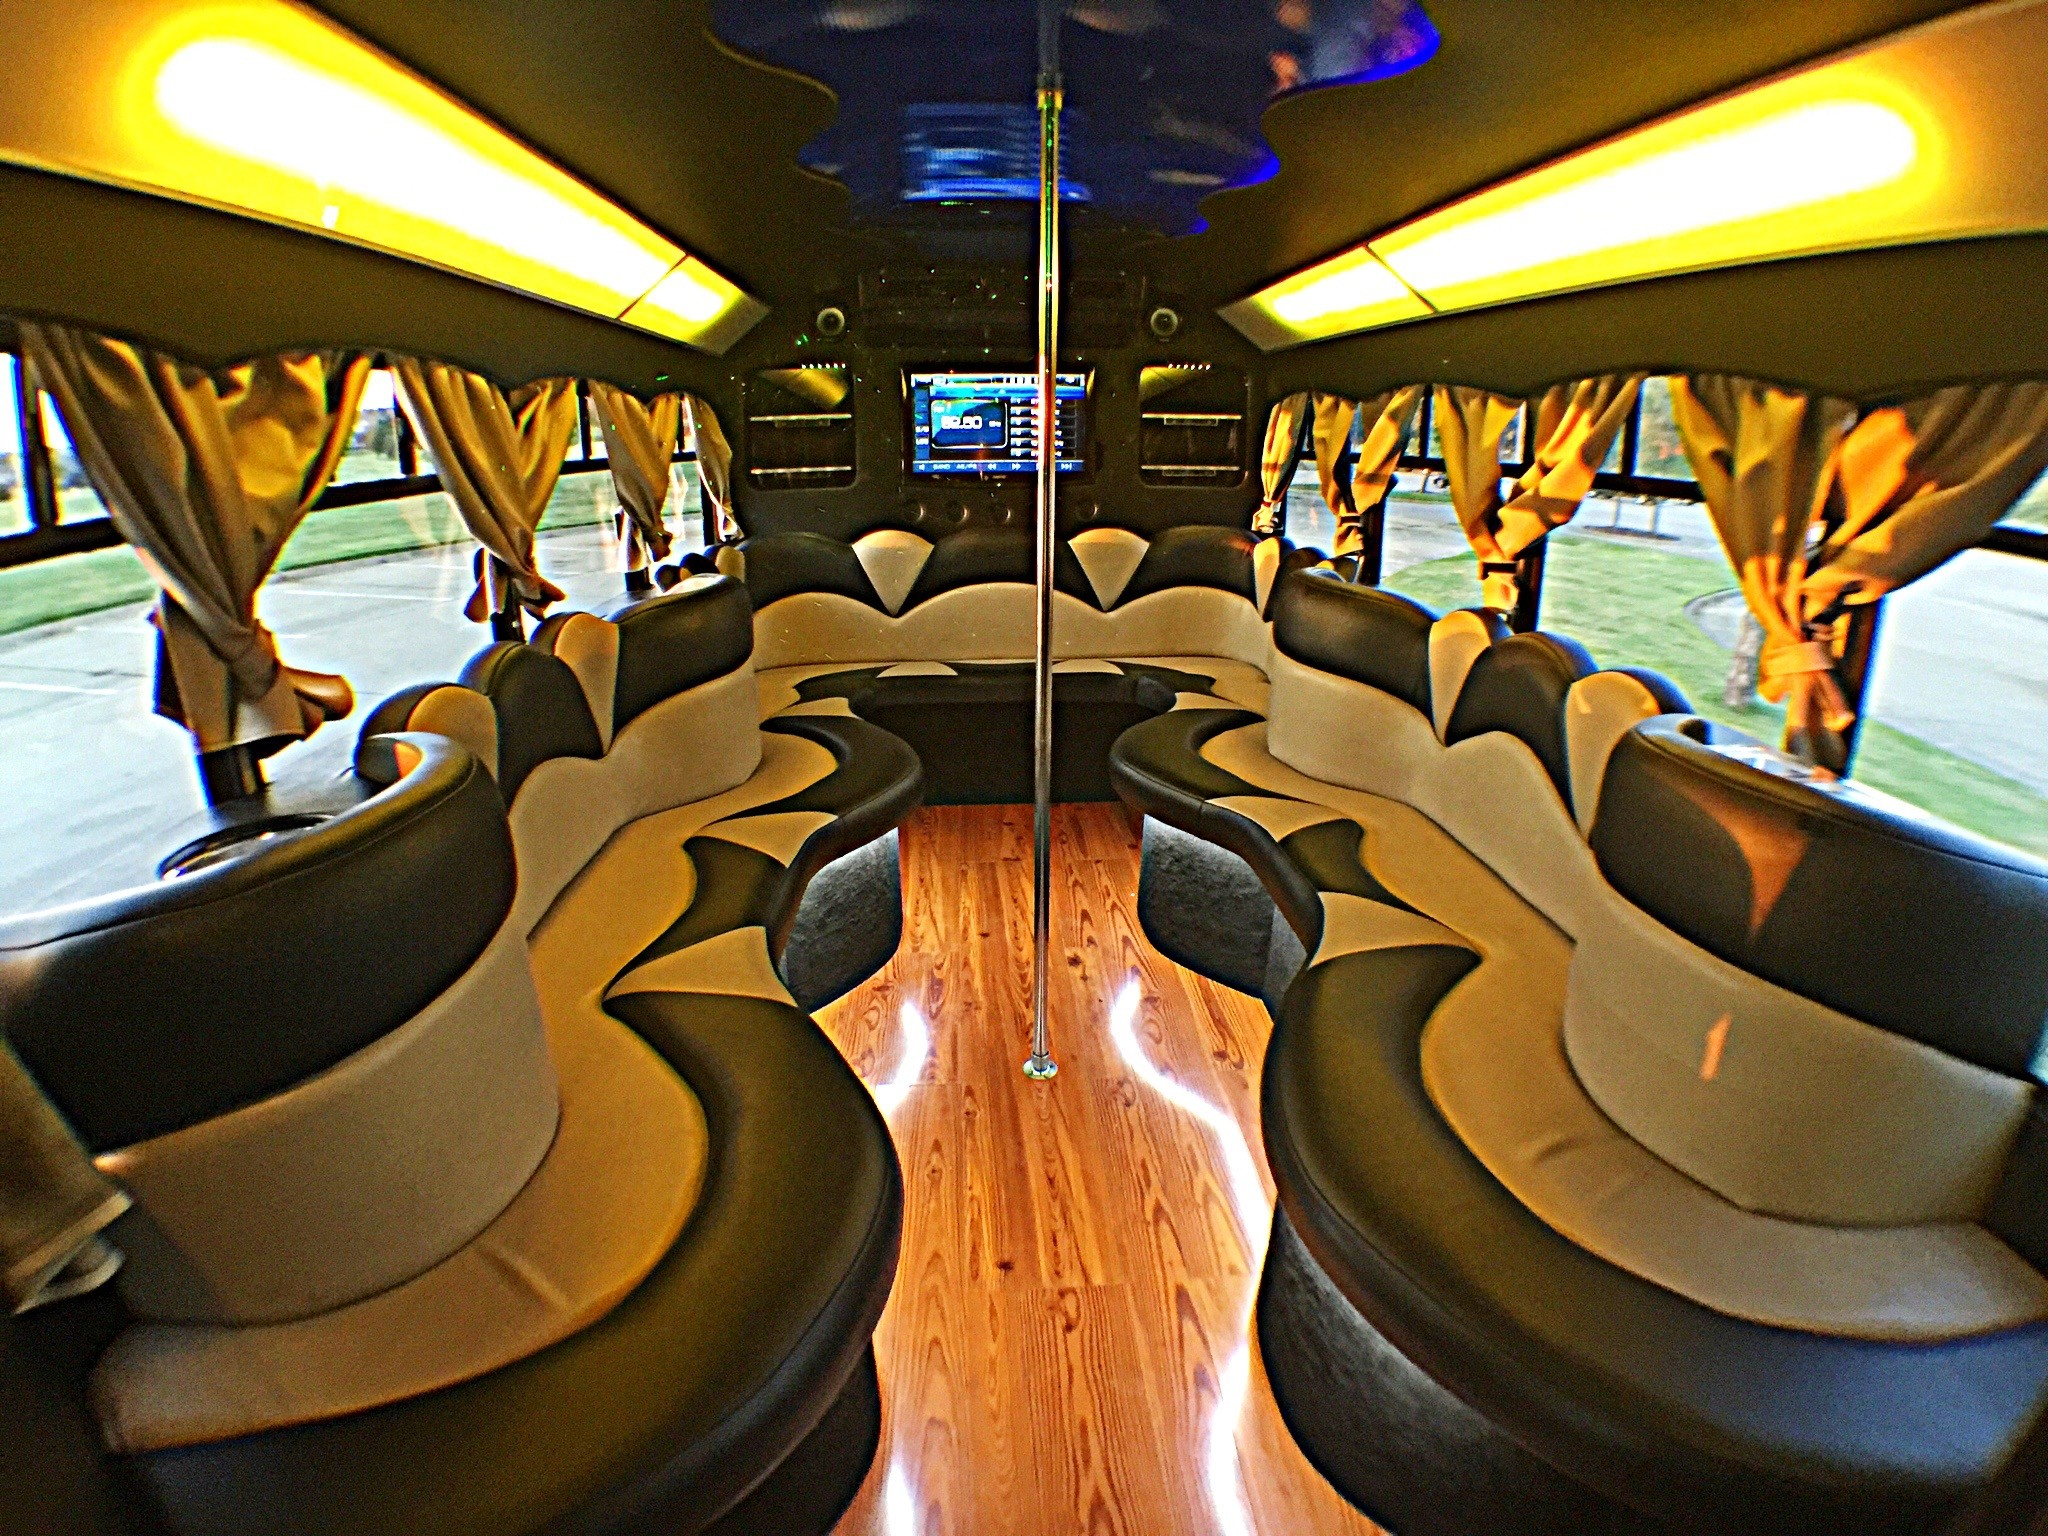 Bachelor Bachelorette Limo Party Bus DFW Dallas Fort Worth Rental Service